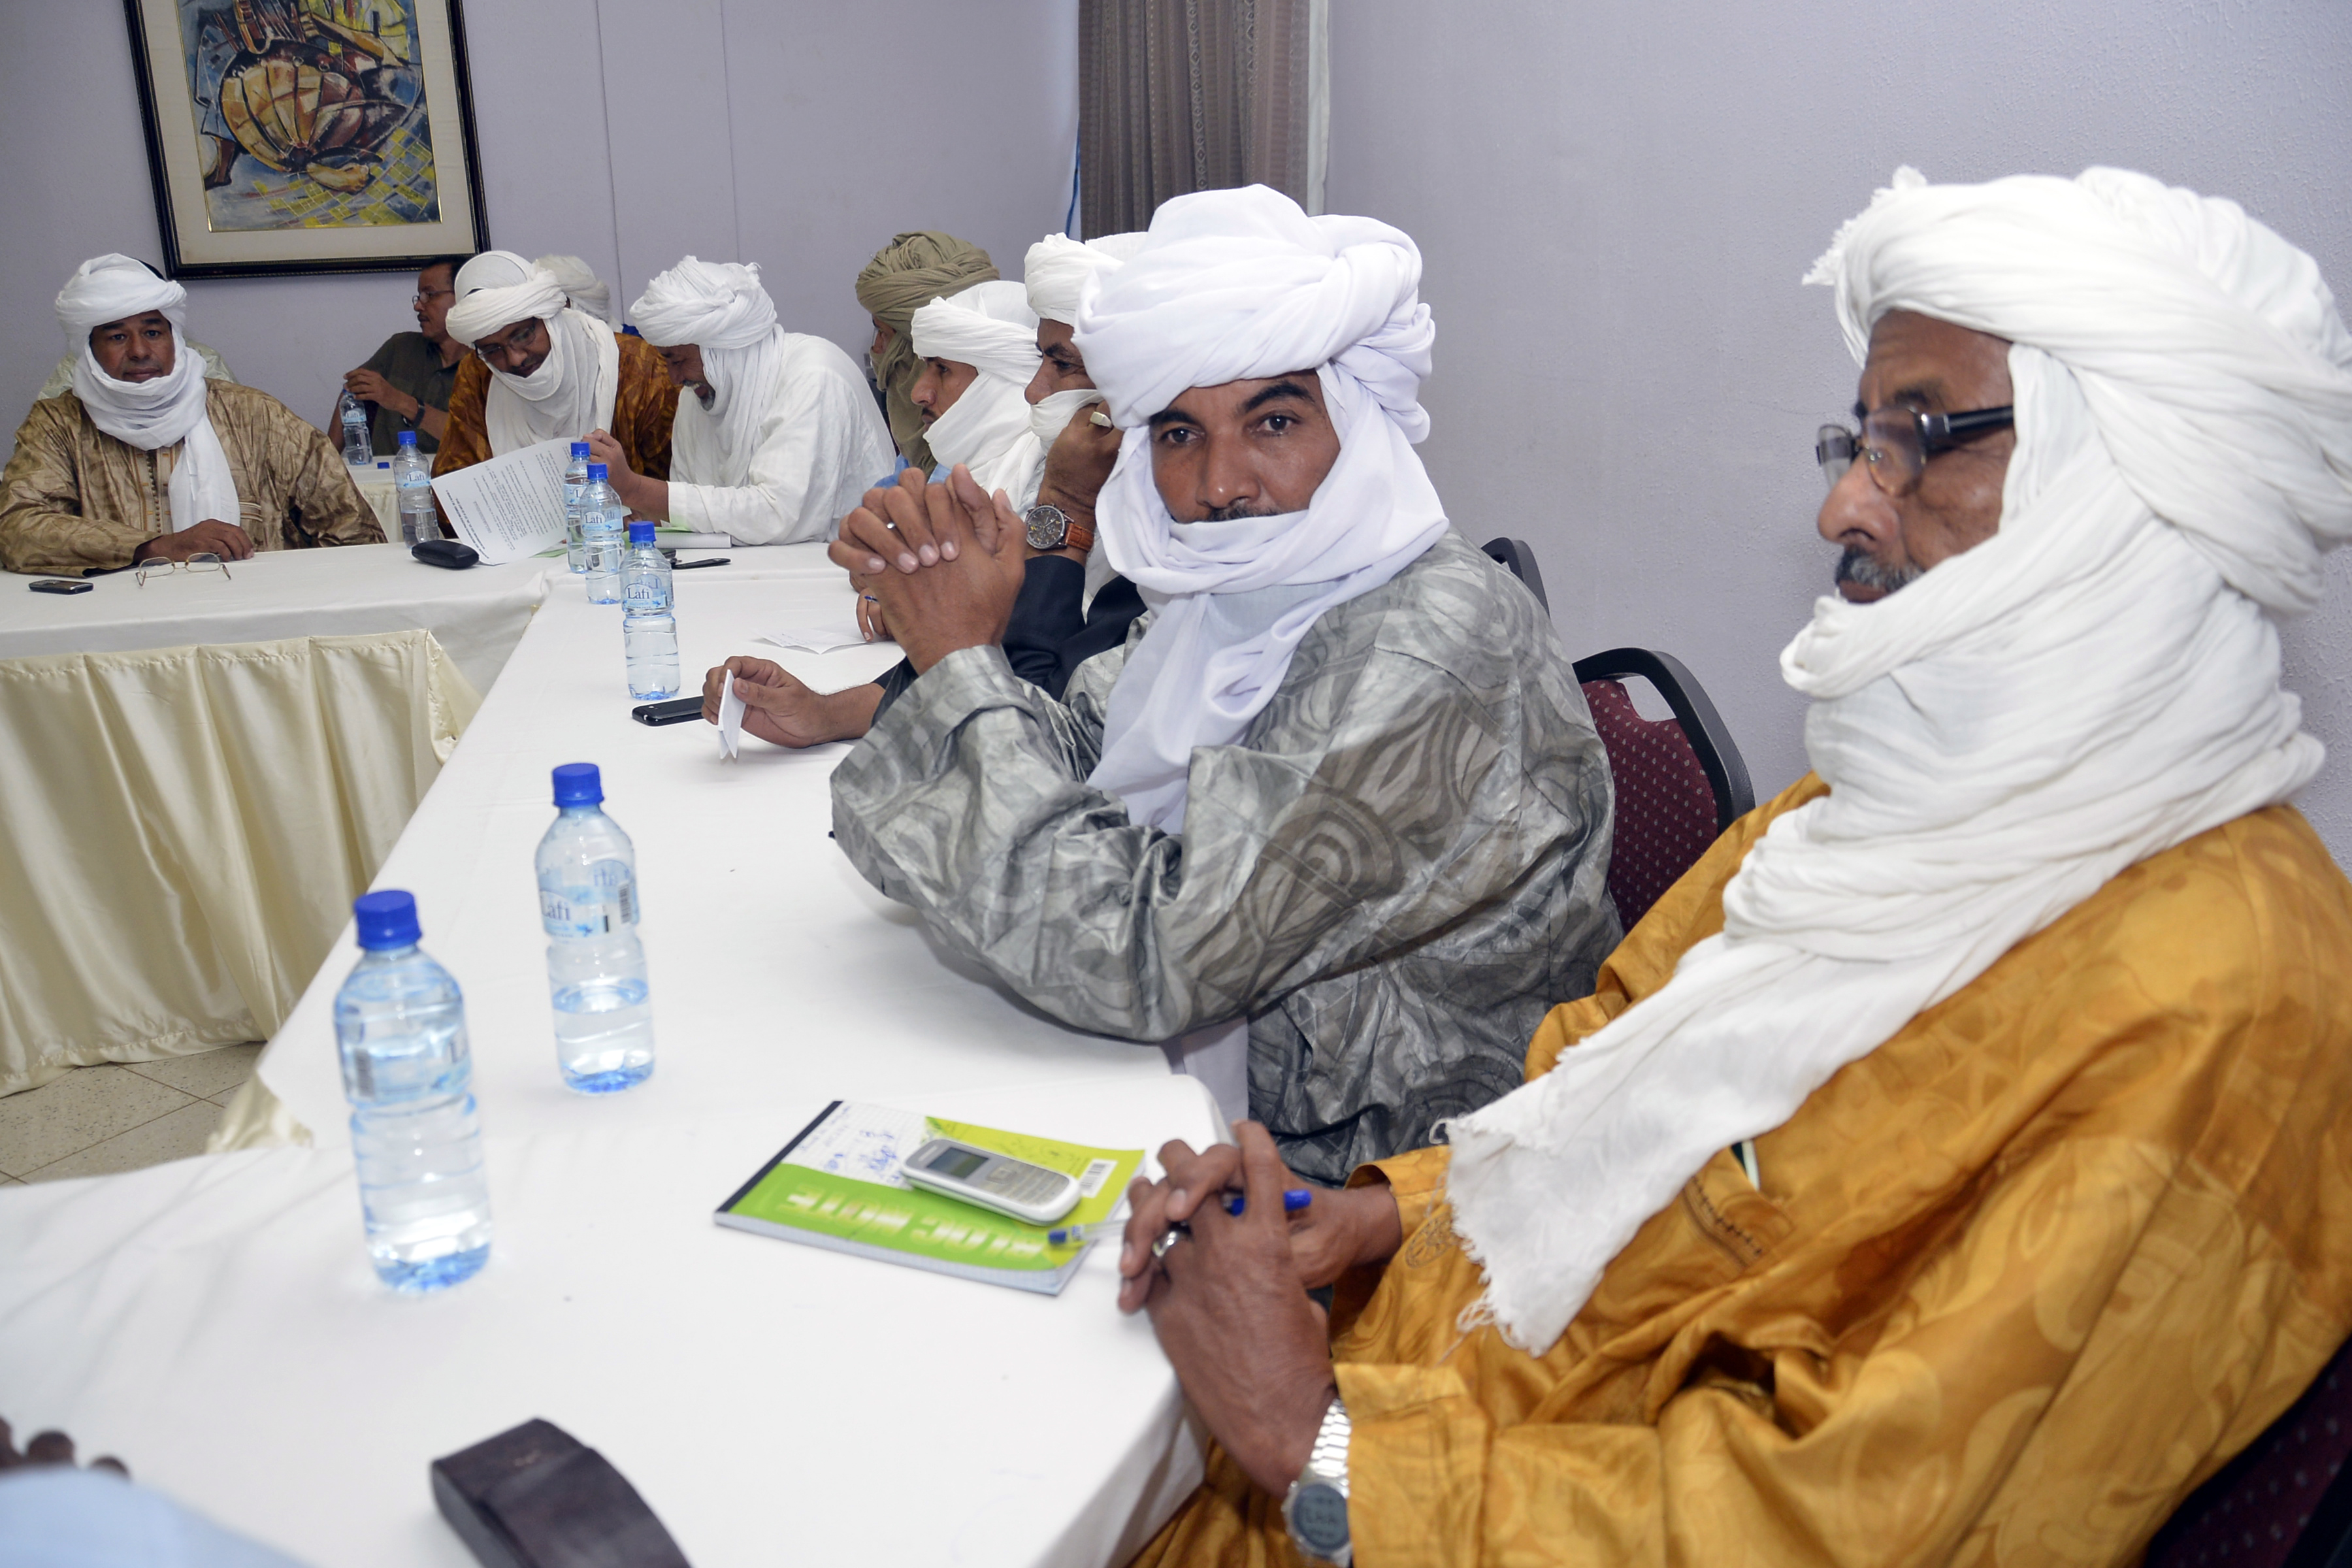 Ethnic Tuareg and Arab militias from Mali meet on August 28, 2014 in Ouagadougou, Burkina Faso, to talk about a homeland in northern Mali (called Azawad) they lay claim on, ahead of peace negotiations with the government.